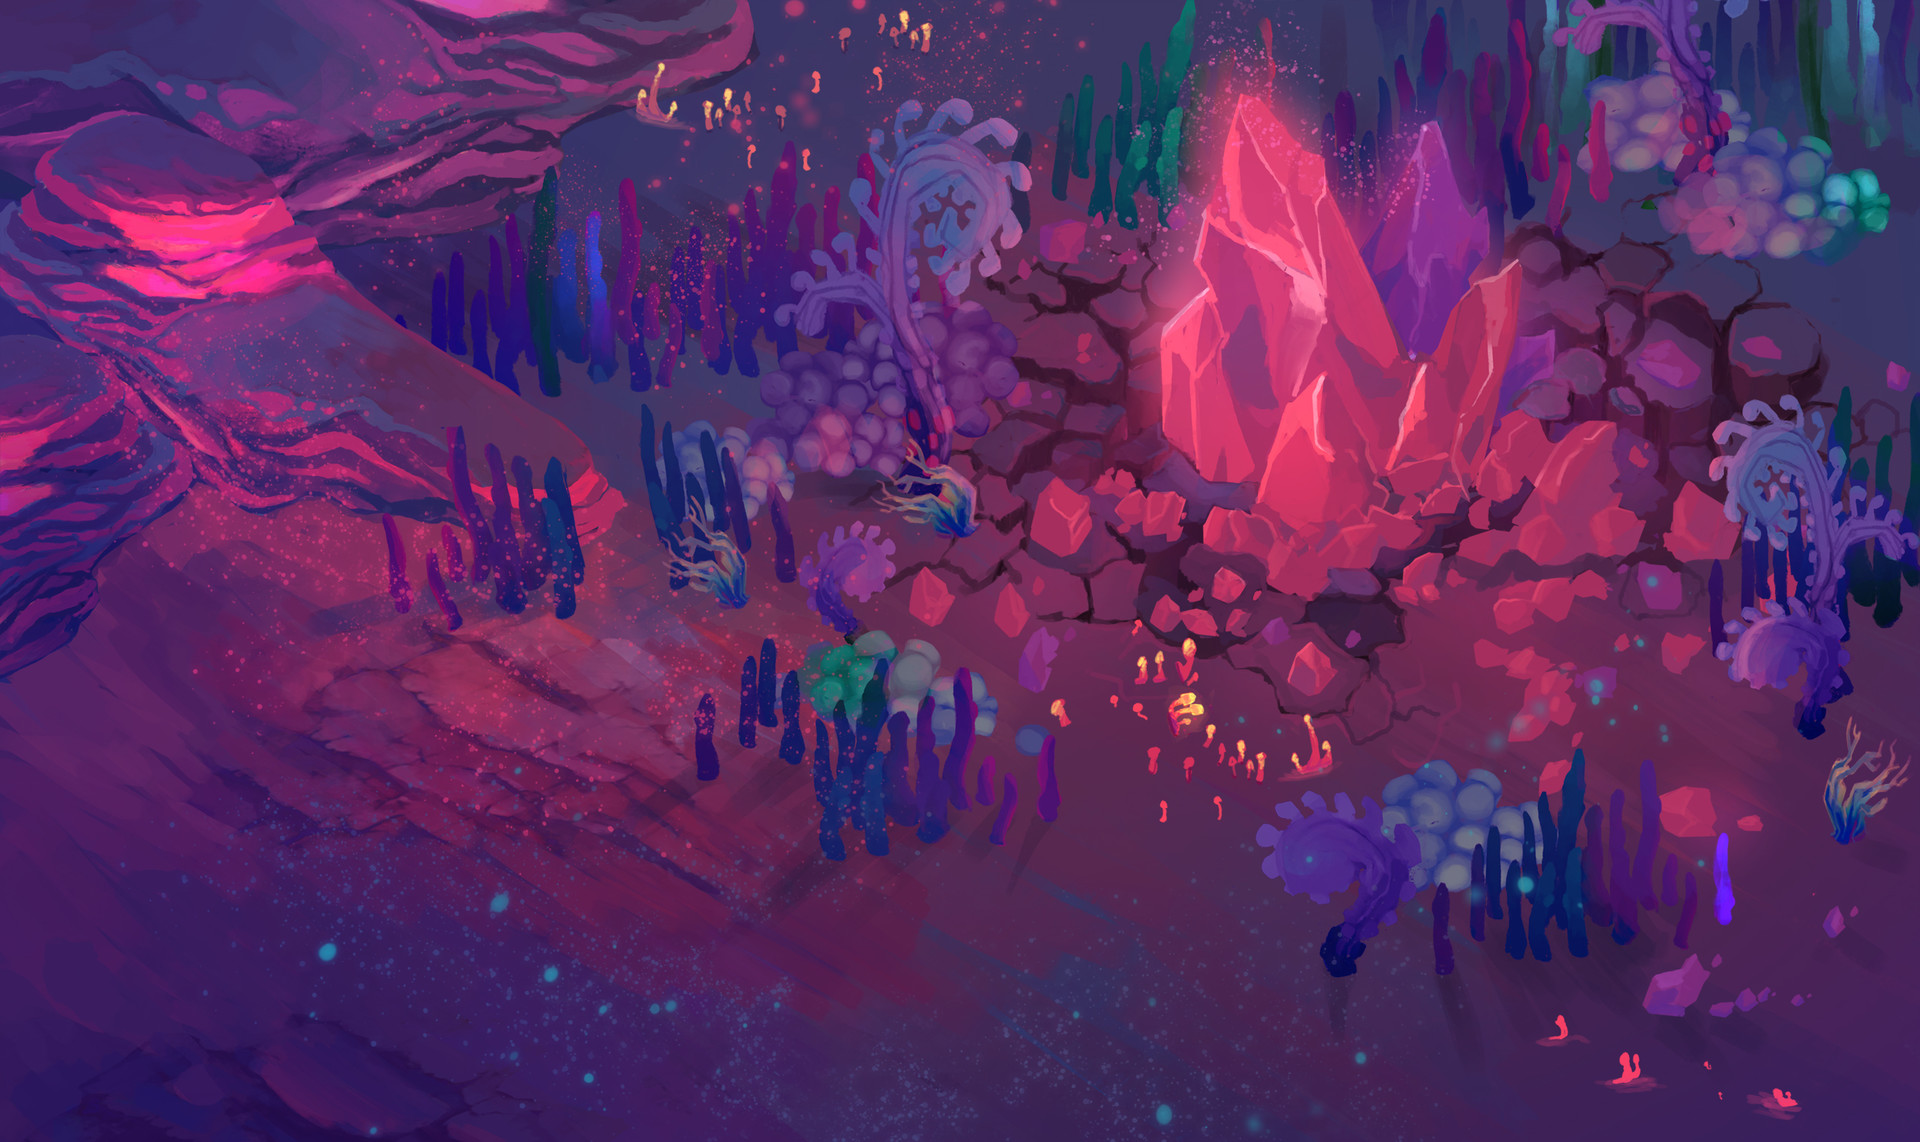 Mushroom biome environment art